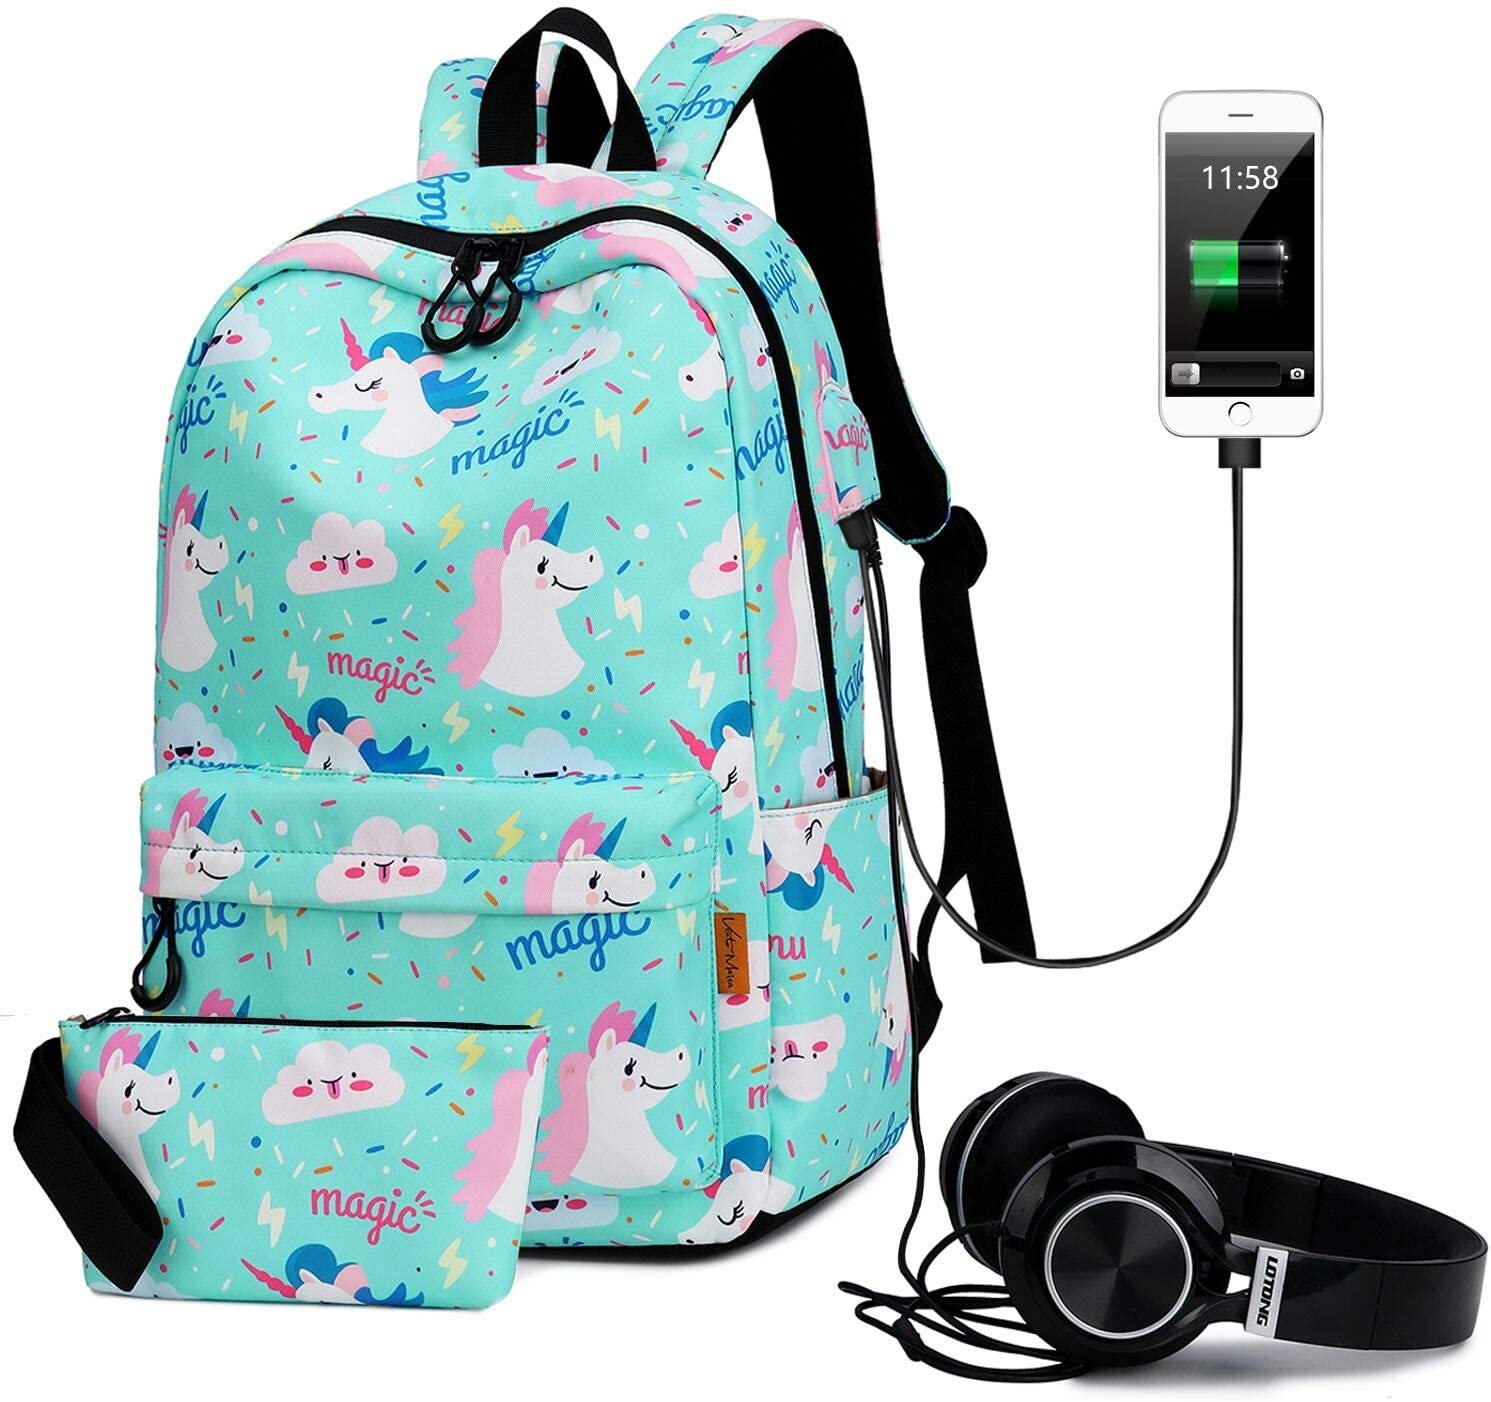 Travel Laptop Backpack with USB Charging Port & Headphone interface